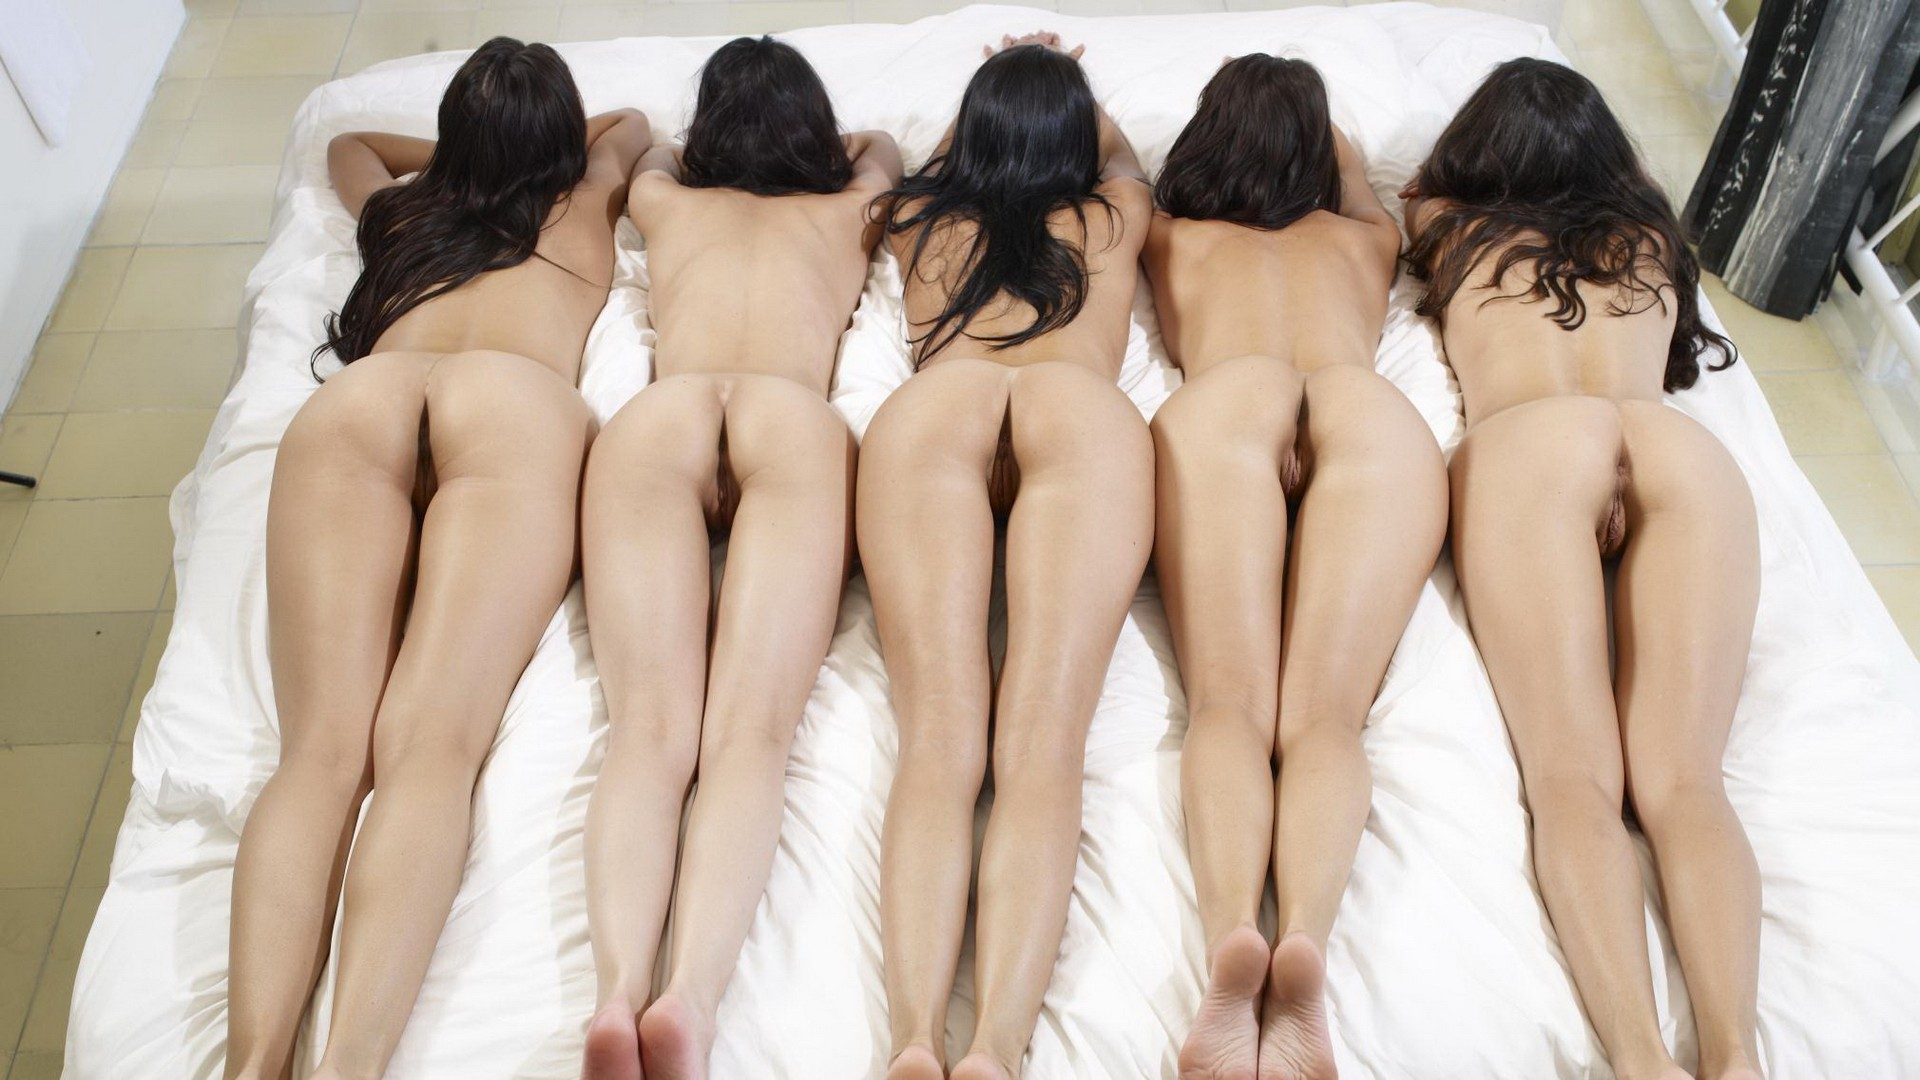 naked-girls-in-group-mix-vol3-57